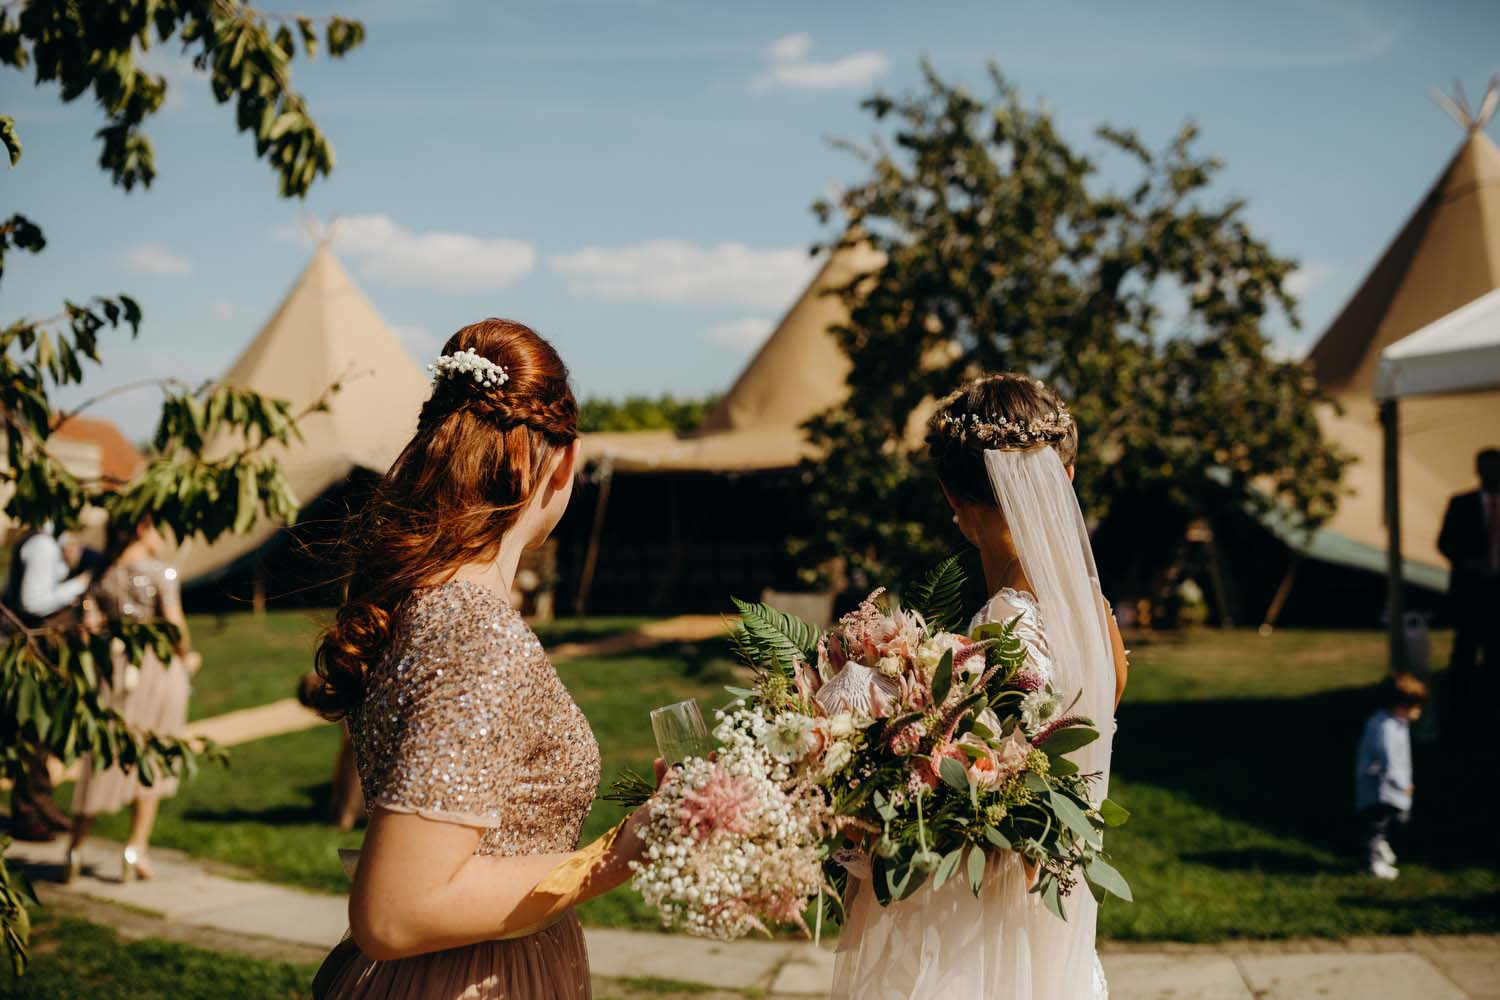 Bride looks at tipi at wedding